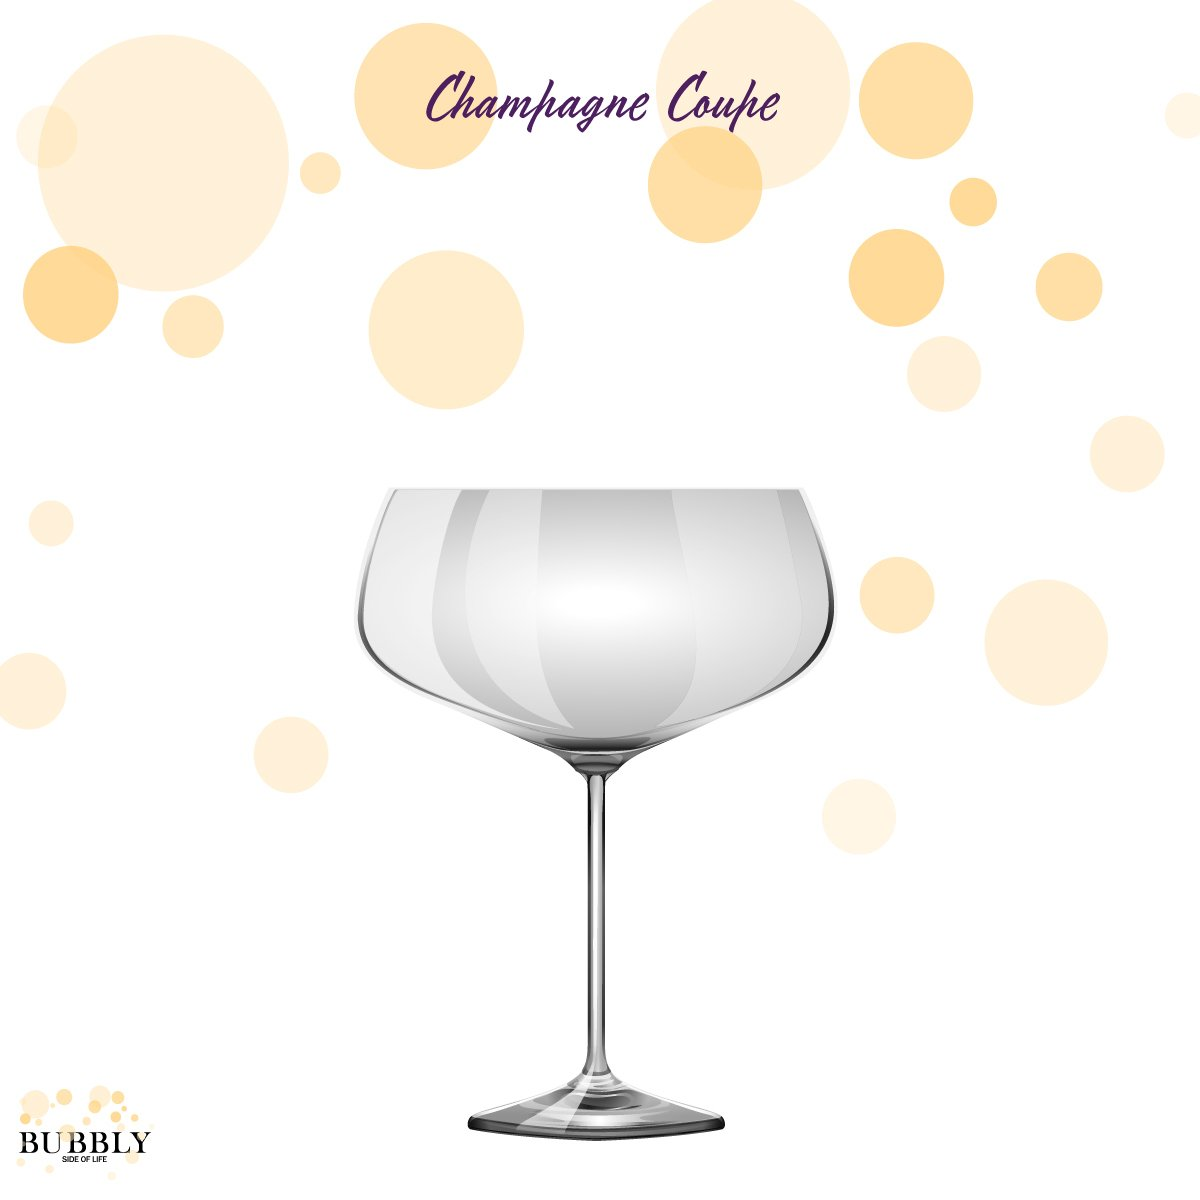 Champagne Coupe - best champagne glasses